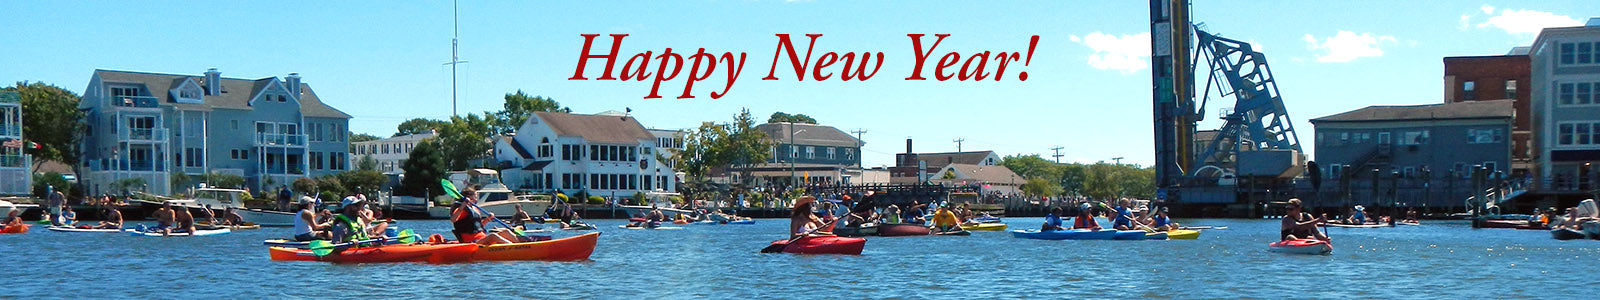 Downtown Mystic Connecticut New Year Image with Drawbridge